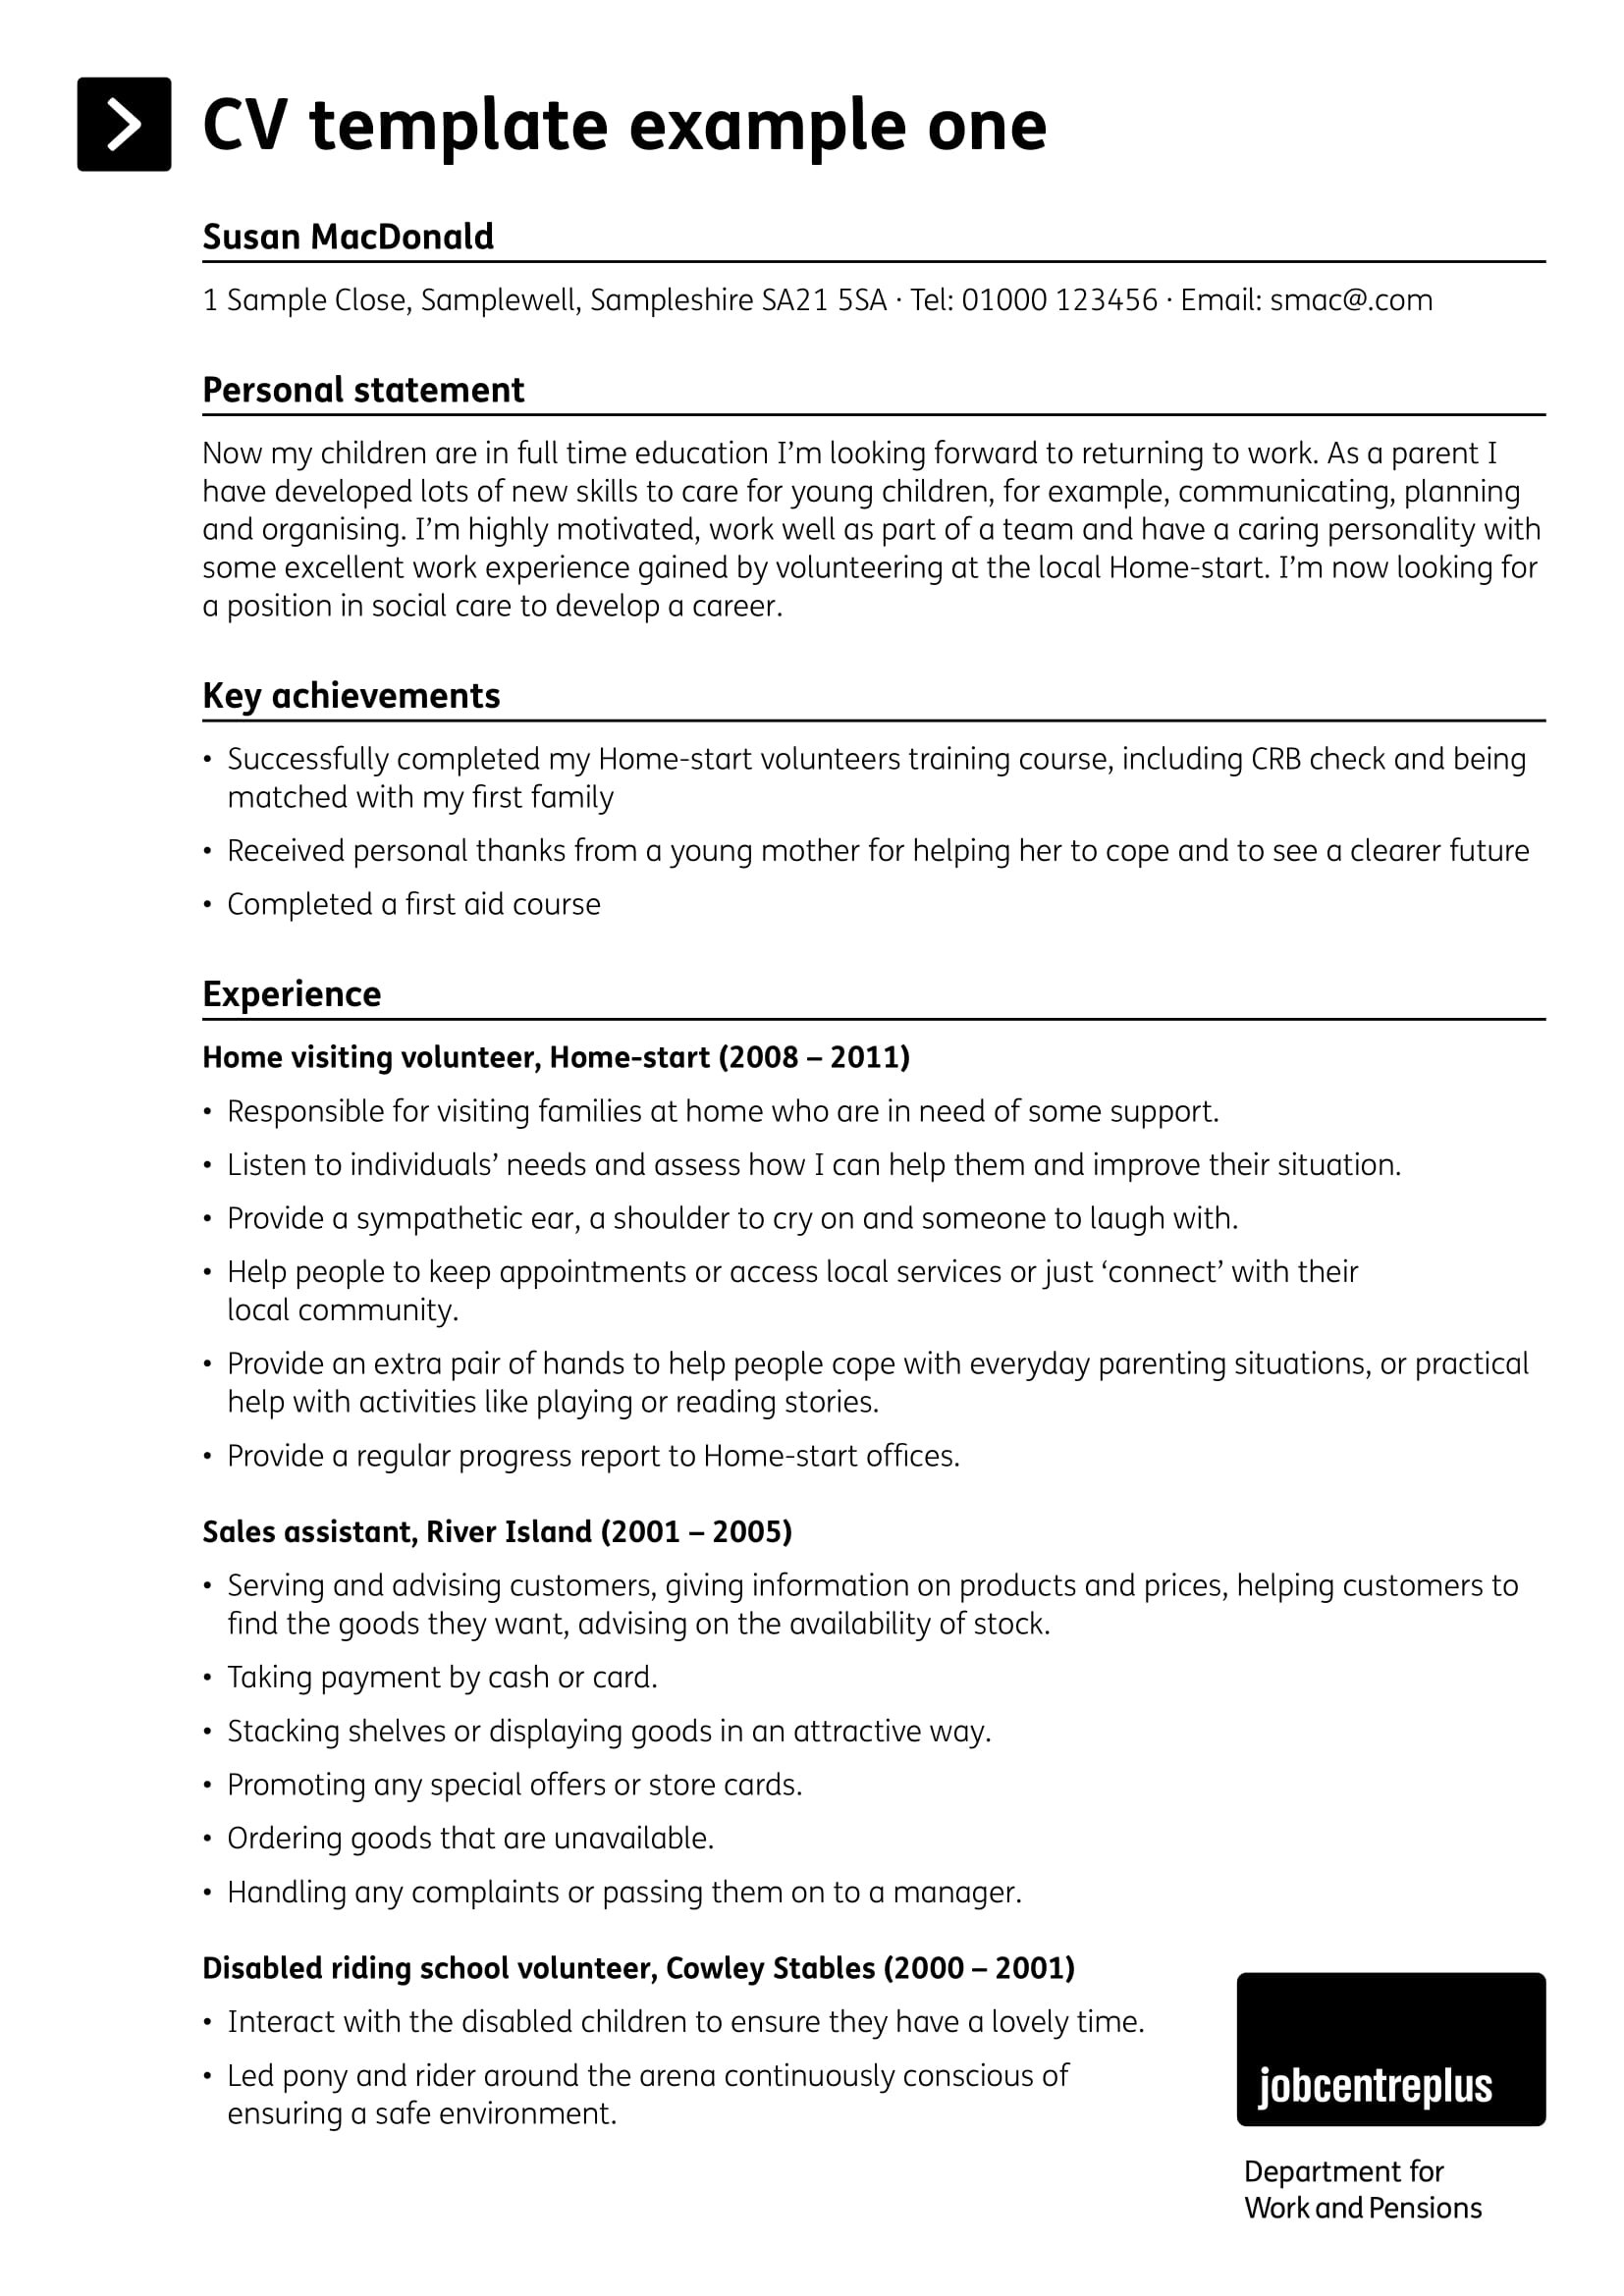 10 Personal Summary Examples  PDF  Examples